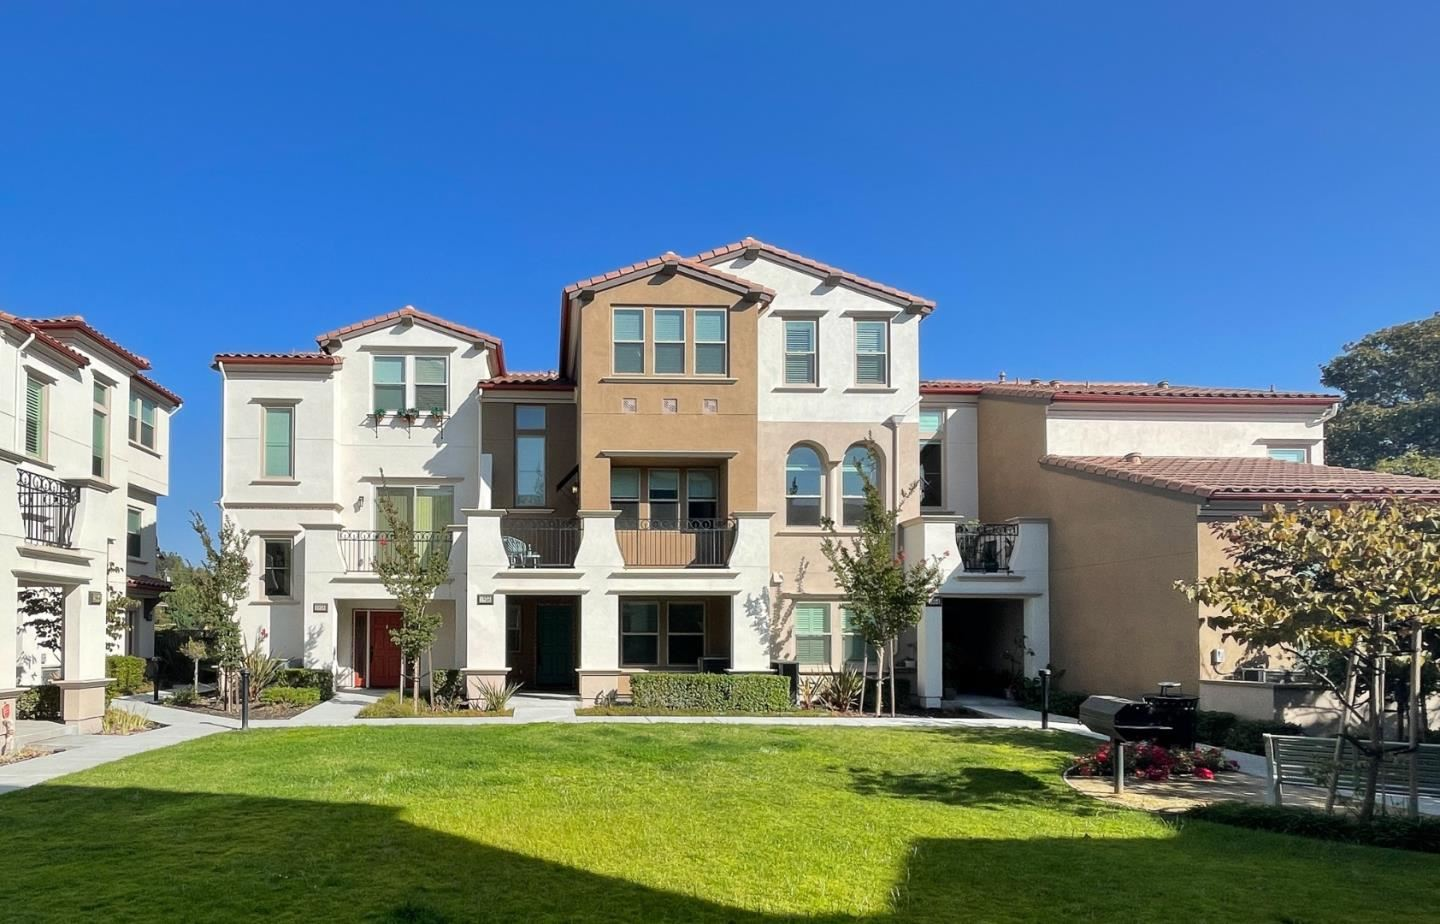 Photo for 1956 San Luis Ave, MOUNTAIN VIEW, CA 94043 (MLS # ML81861856)